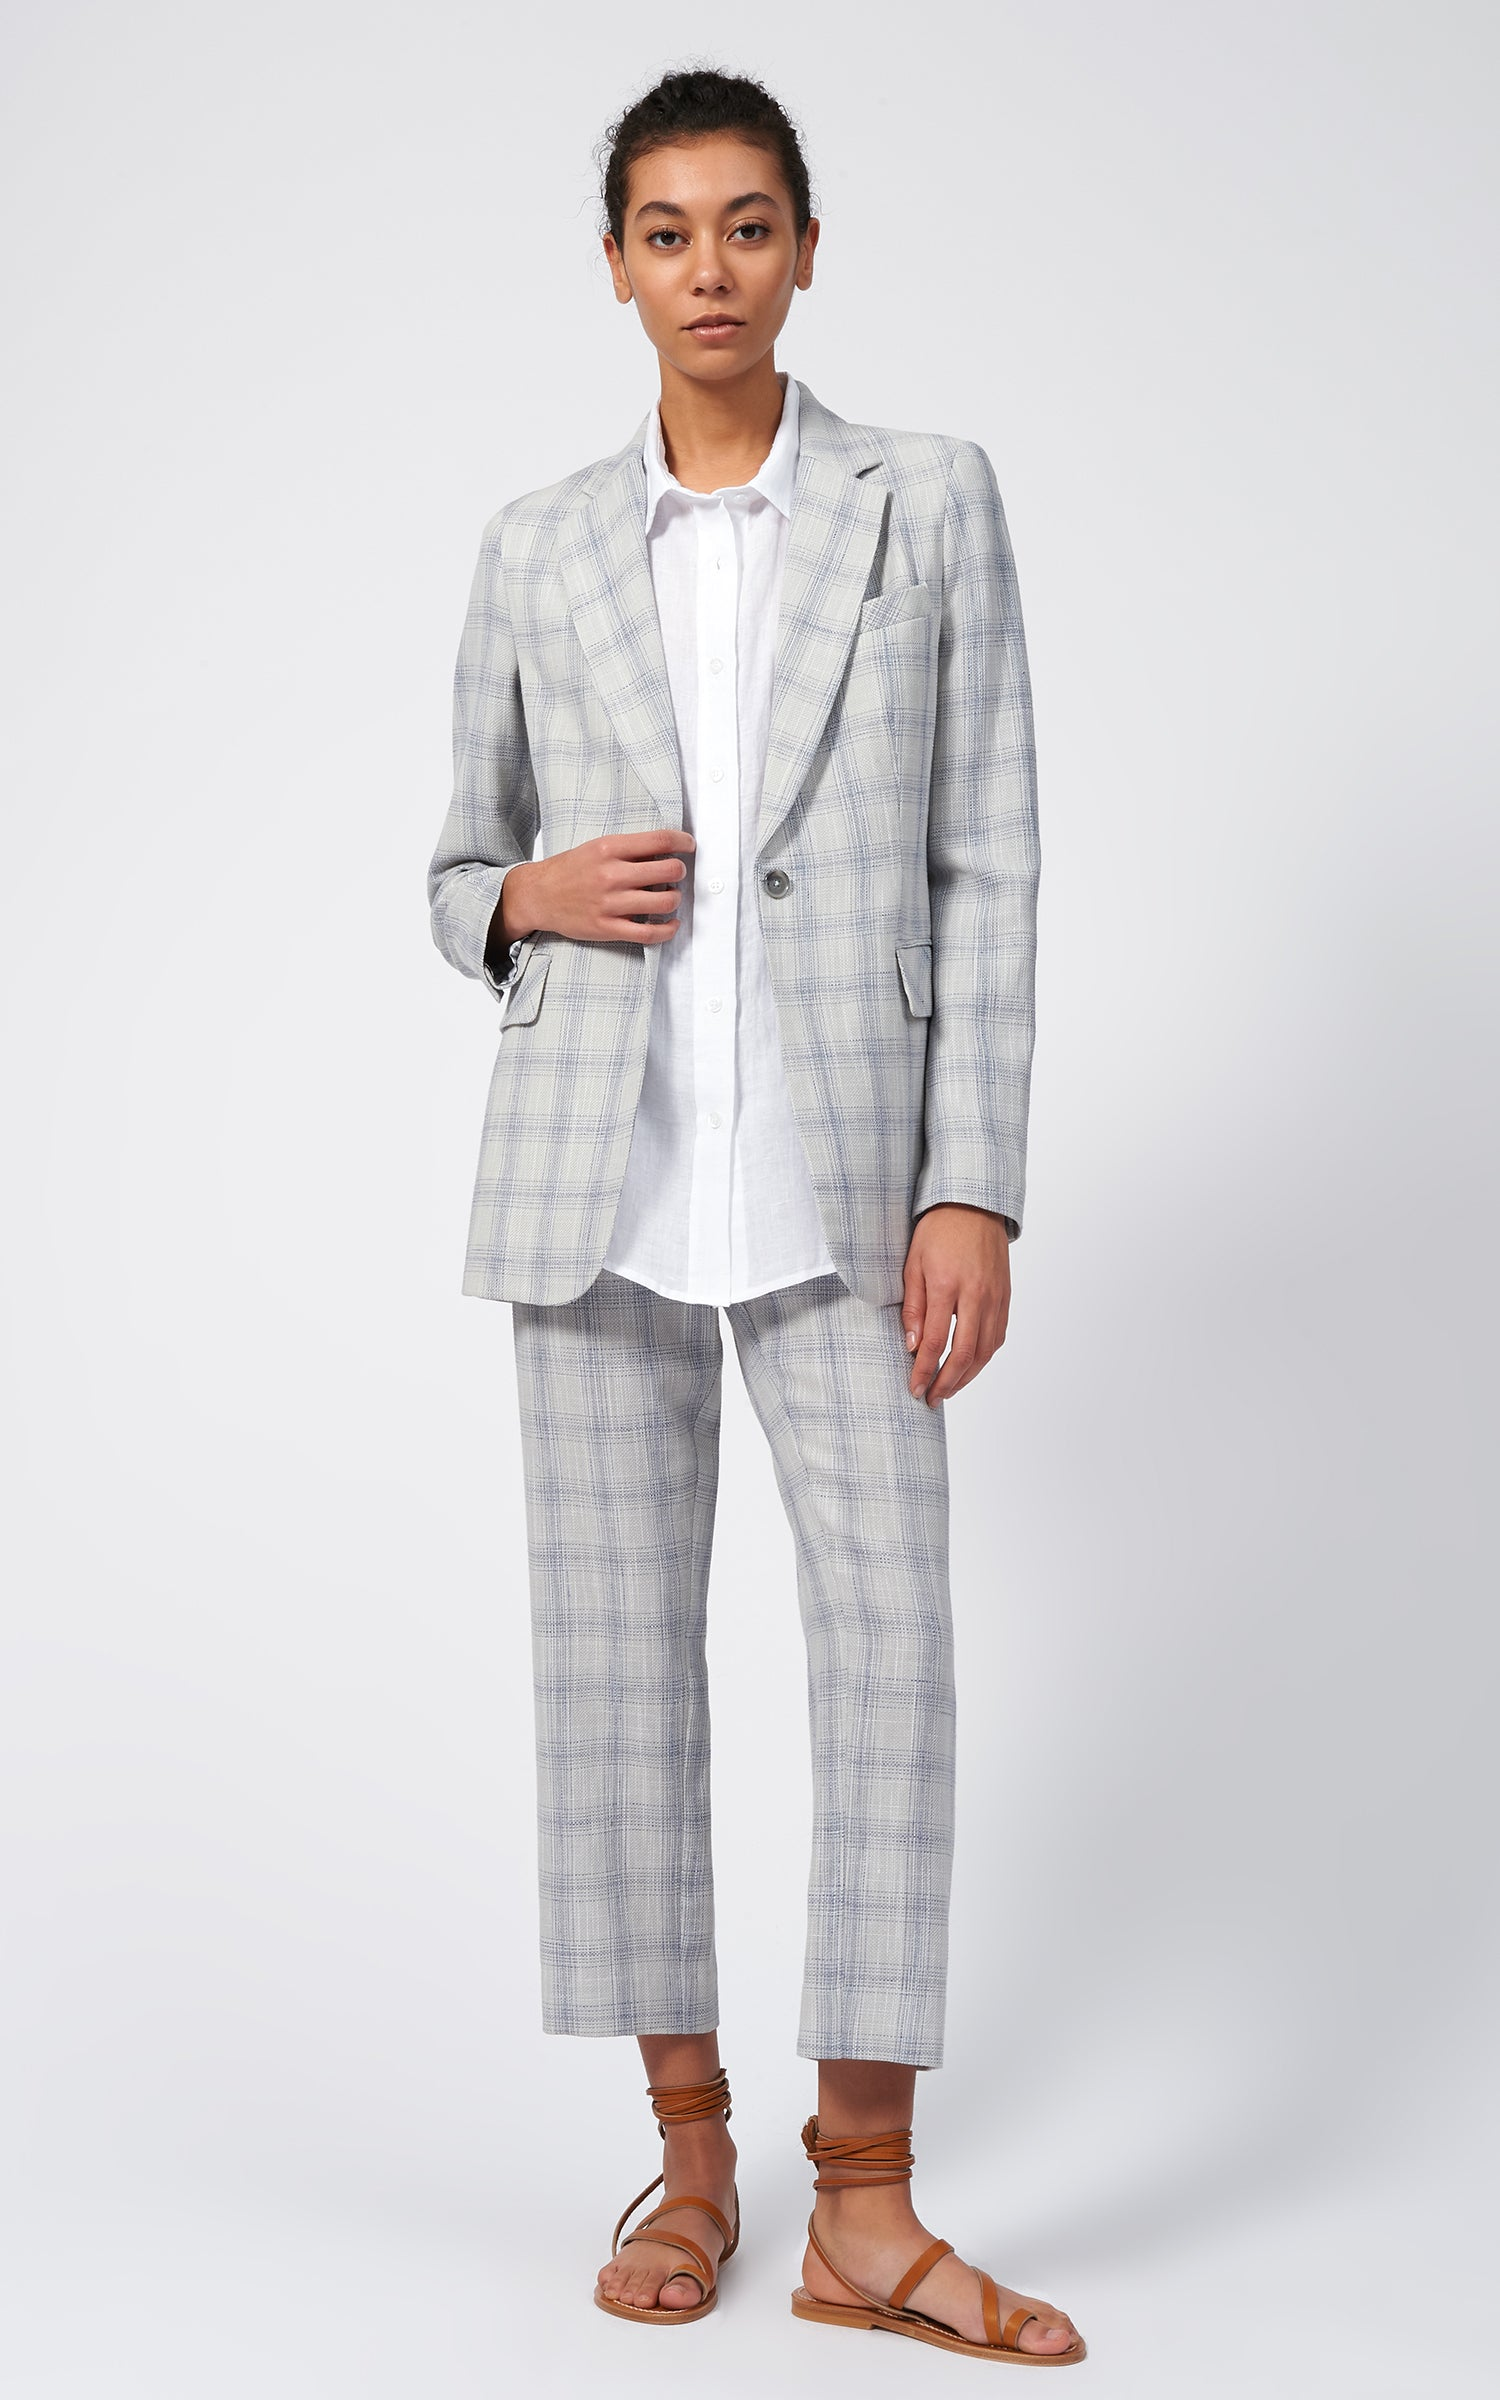 CLASSIC NOTCH BLAZER - GLEN PLAID